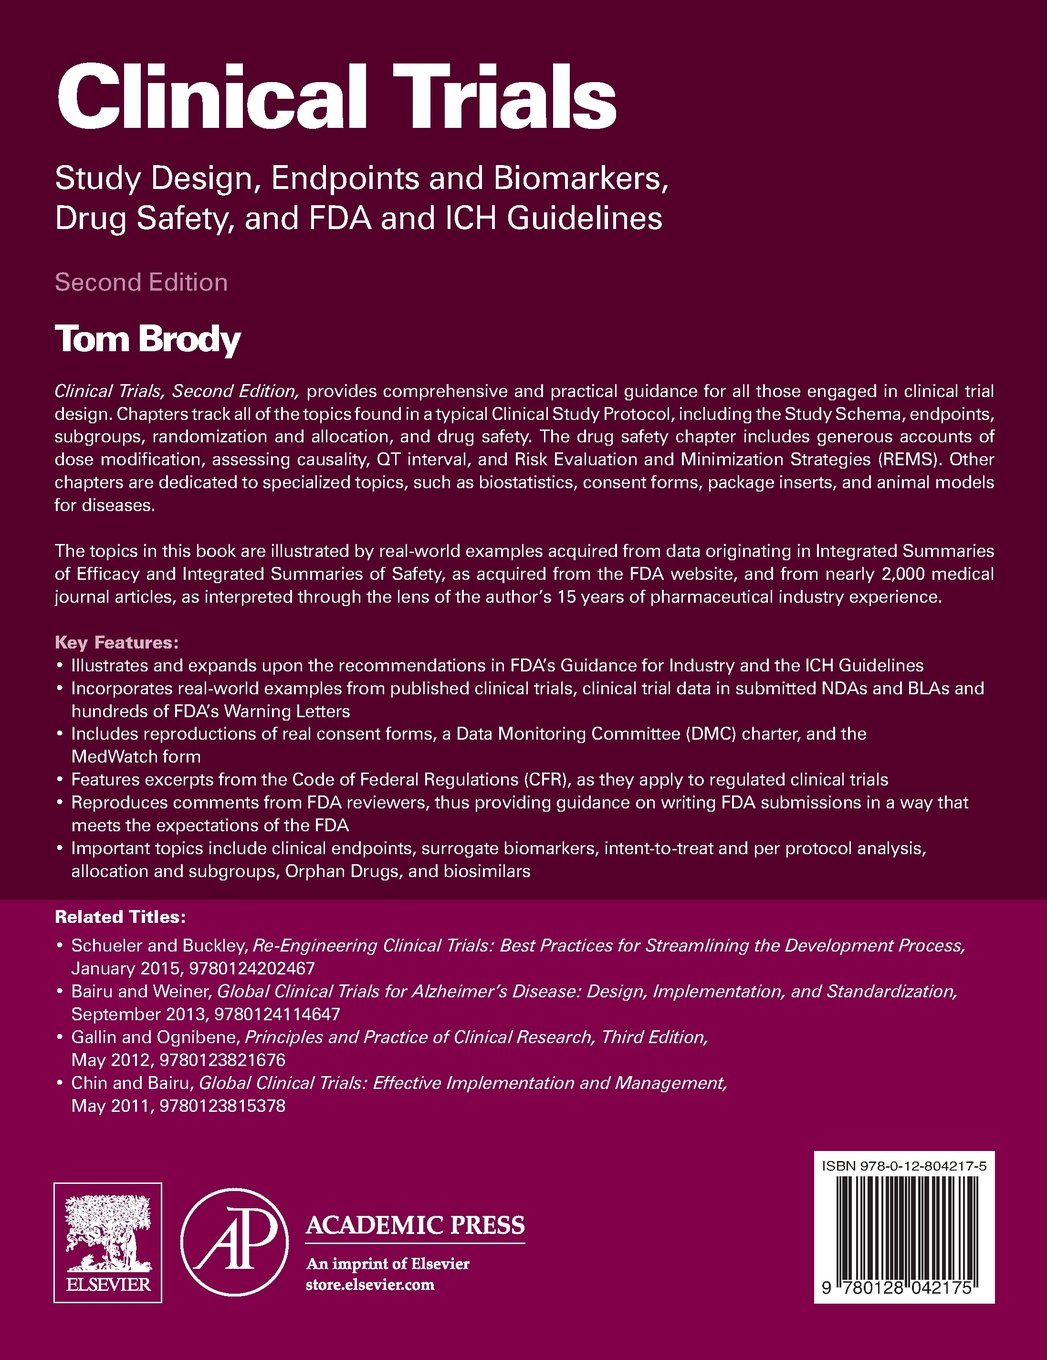 Clinical Trials: Study Design, Endpoints and Biomarkers, Drug Safety, and FDA and ICH Guidelines by ACADEMIC PRESS